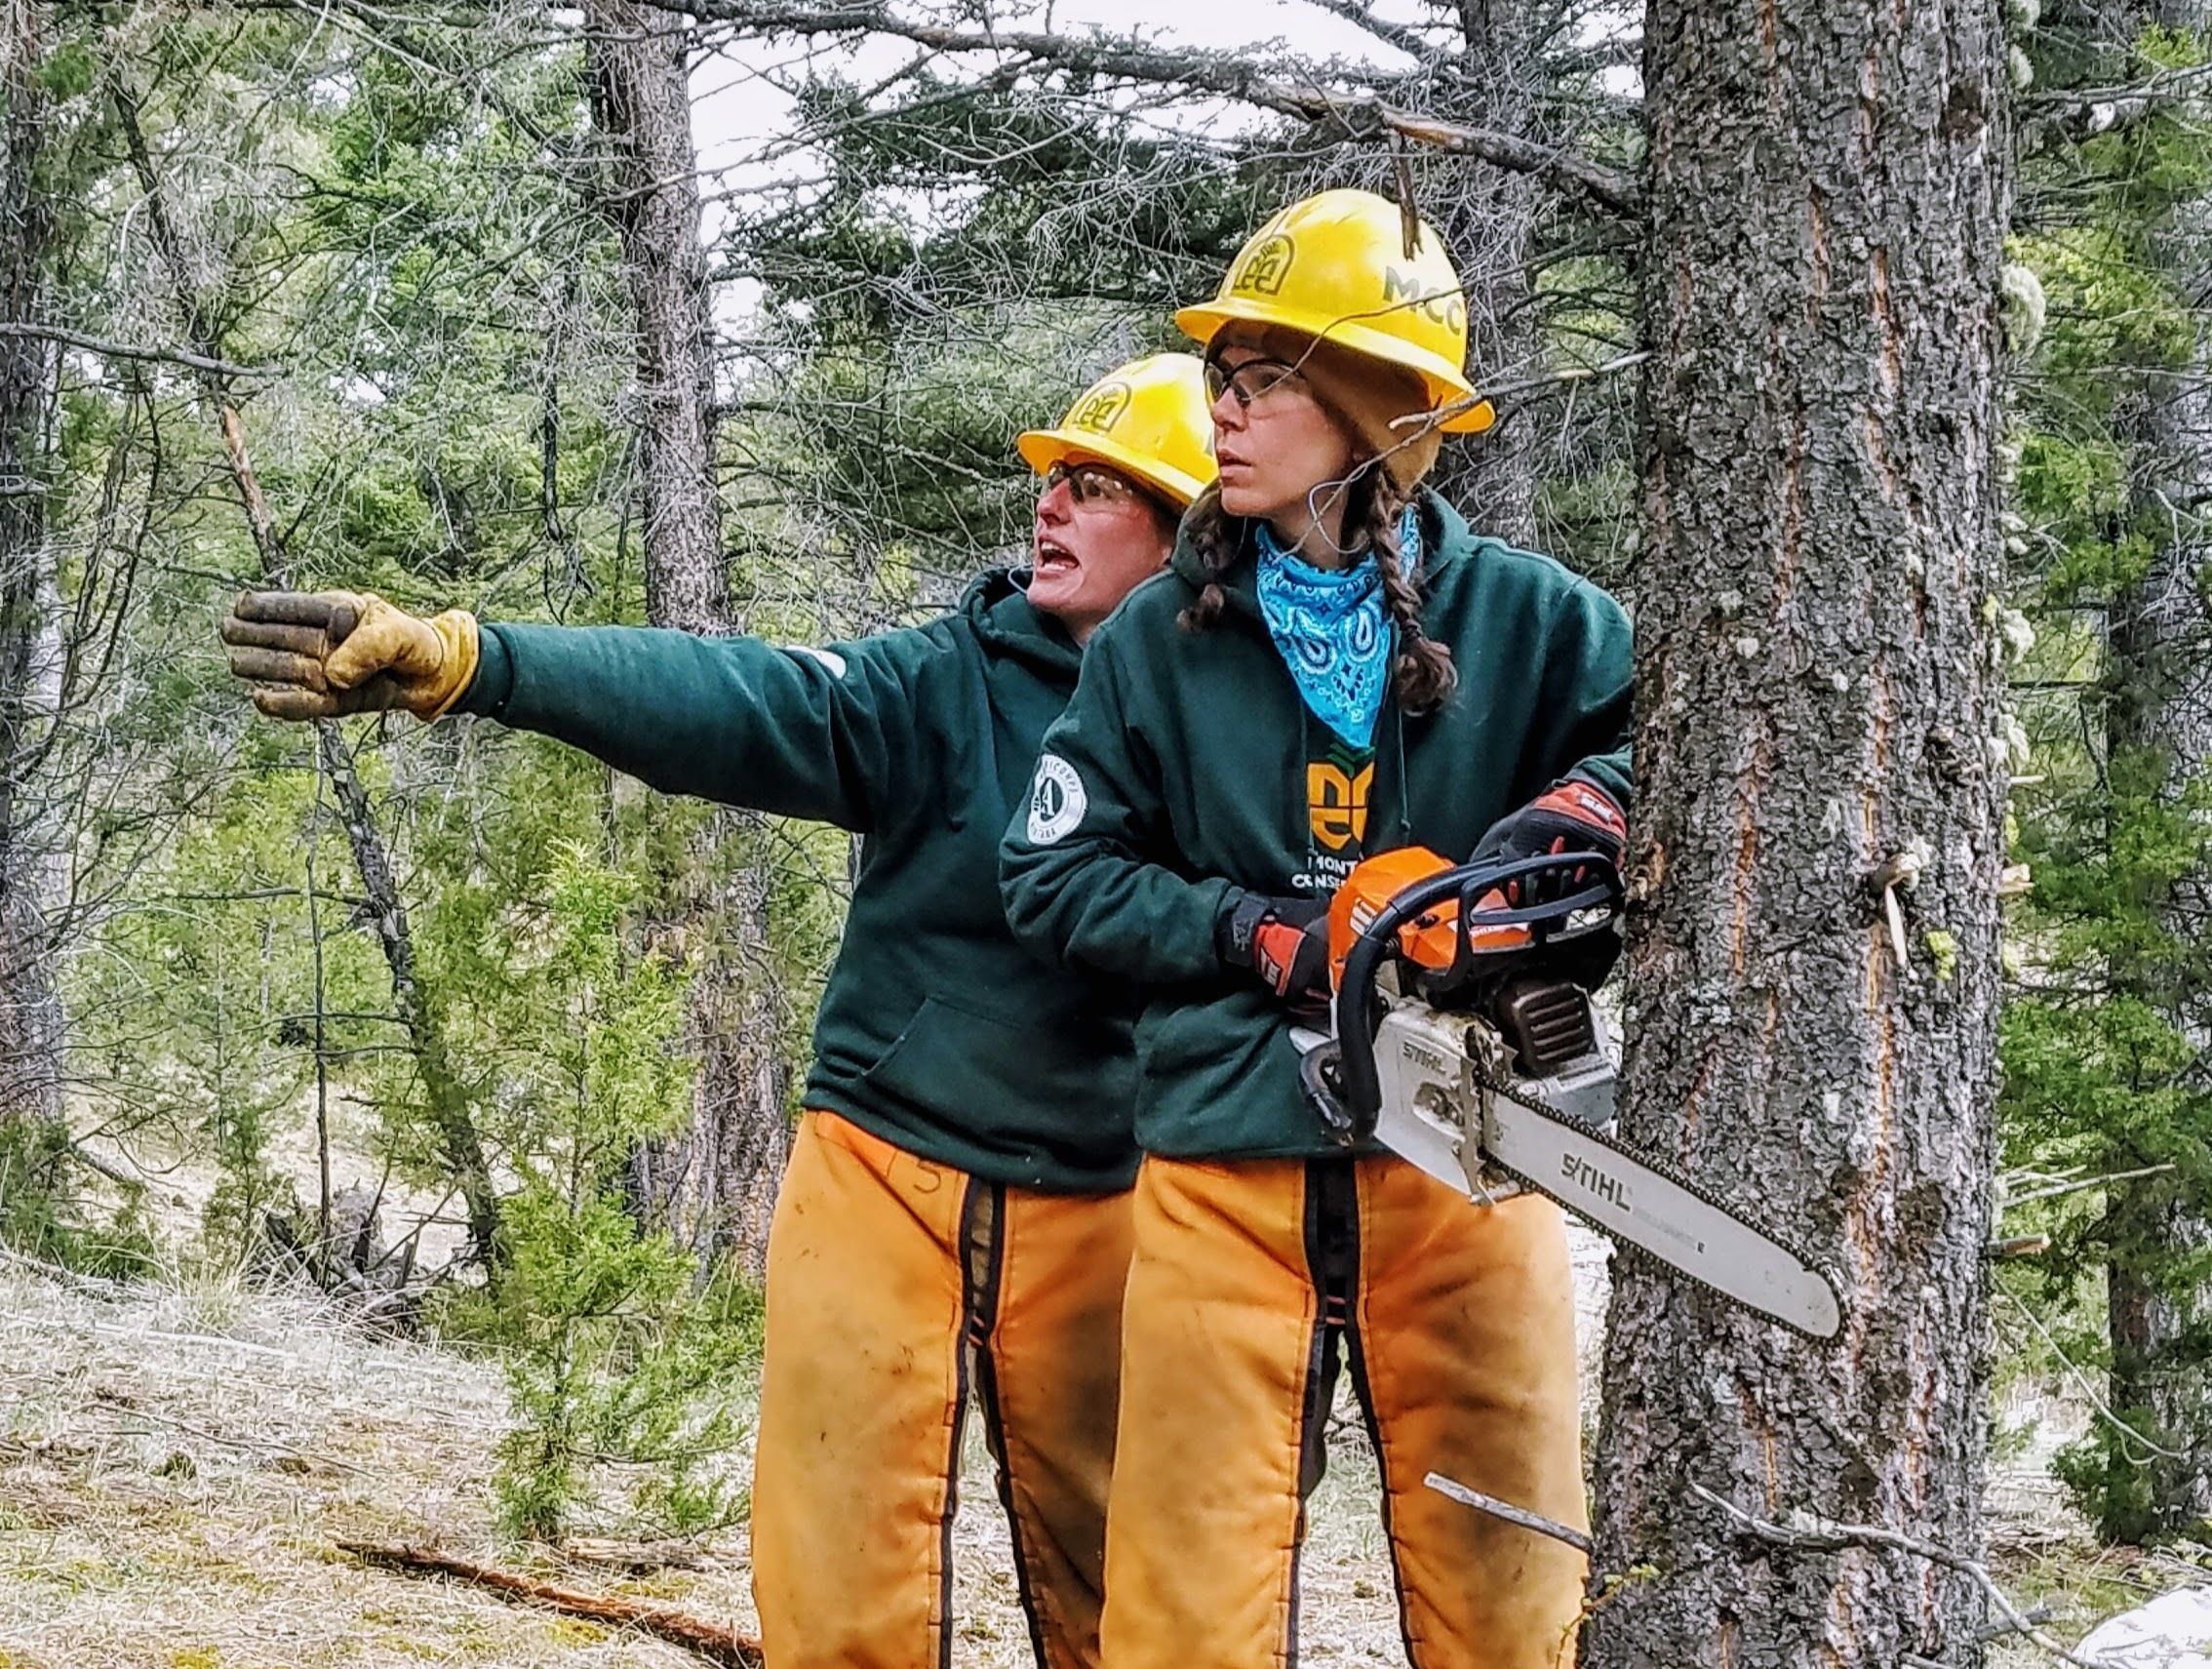 MCC's Women's Fire Crews: The Next Generation of Leaders in Wildland Fire